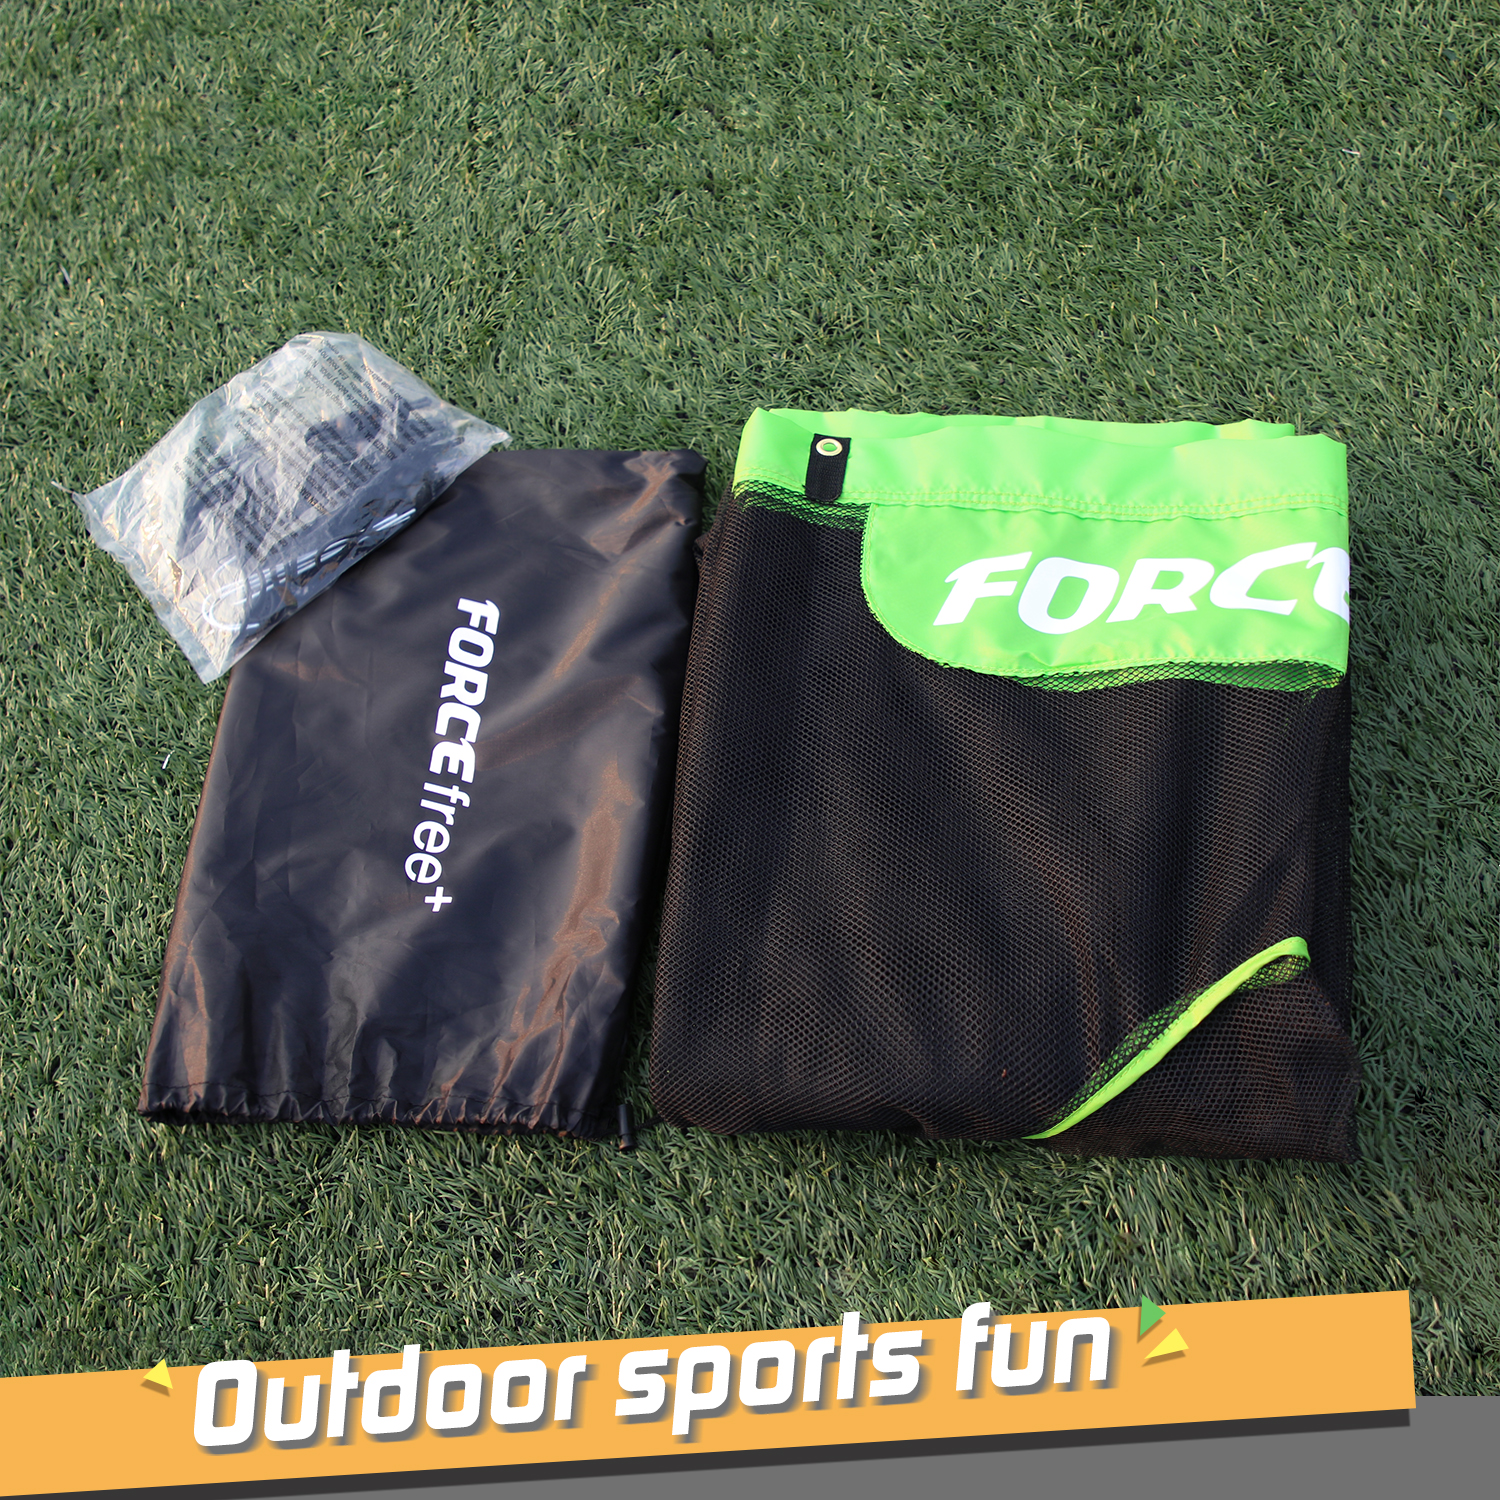 Fordable Soccer Goal Target Nets-with 5 Scoring Zones Extra-Sturdy Portable 5